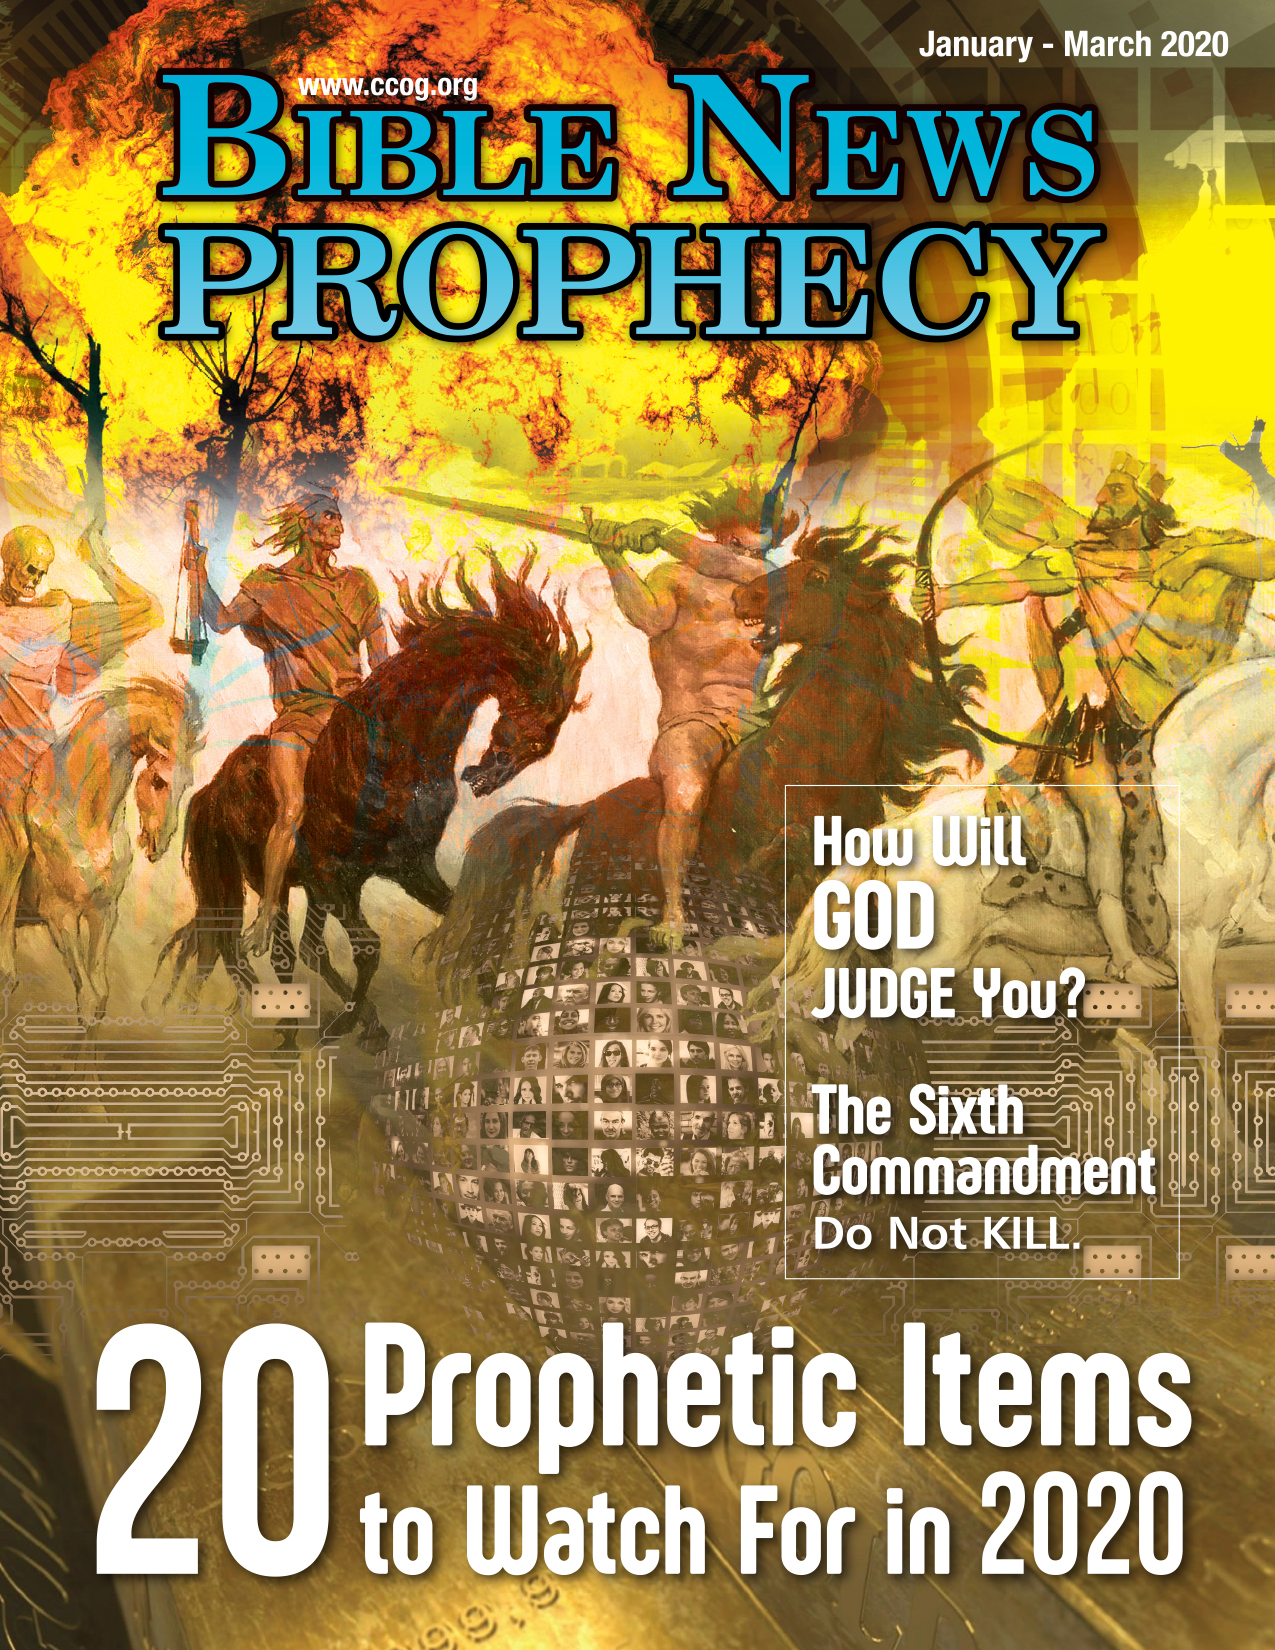 20 Prophetic Items to Watch in 2020